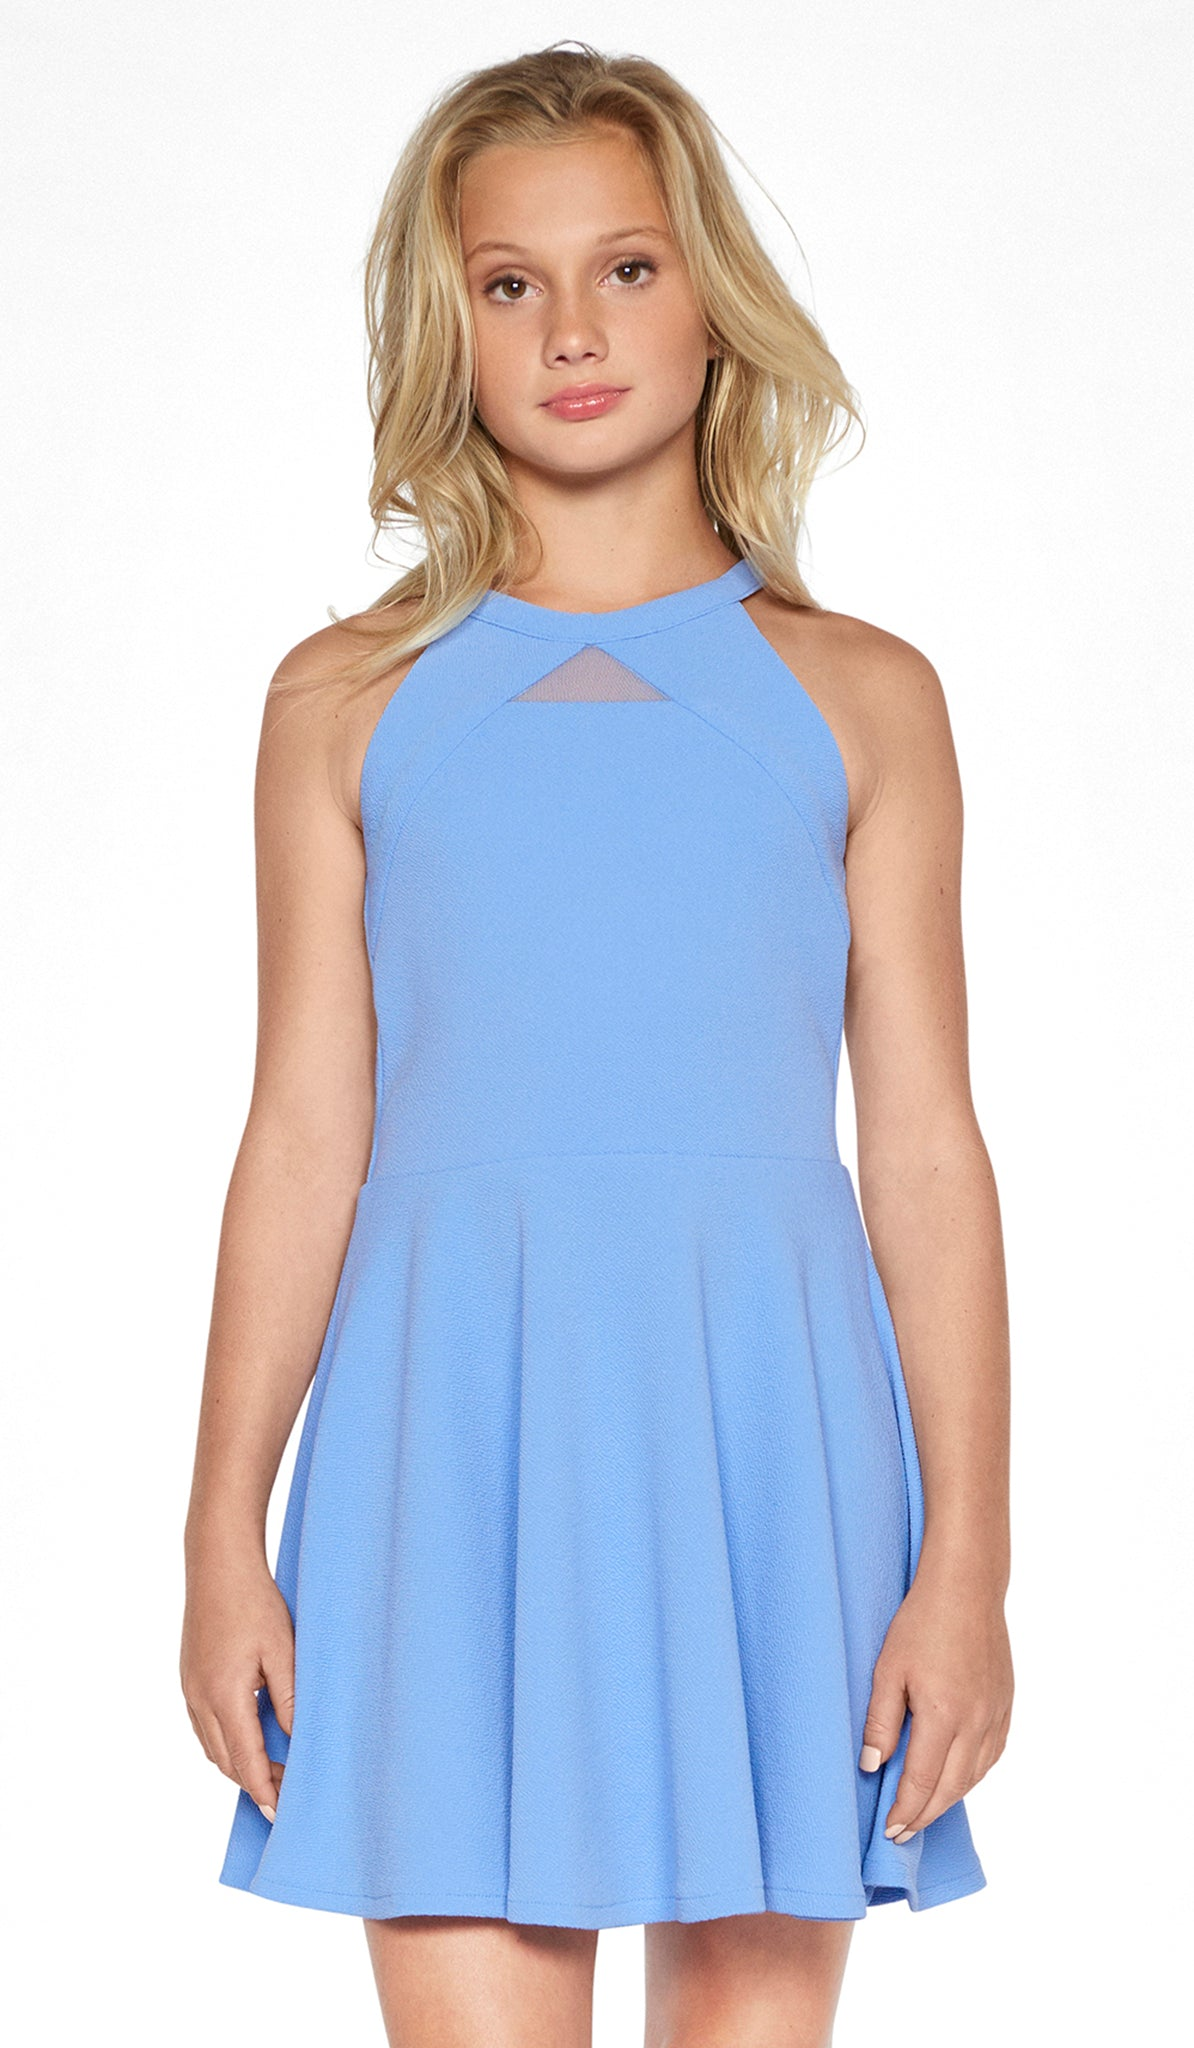 THE ELISE DRESS (JUNIORS) - Sallymiller.com - [variant title] - | Event & Party Dresses for Tween Girls & Juniors | Weddings Dresses, Bat Mitzvah Dresses, Sweet Sixteen Dresses, Graduation Dresses, Birthday Party Dresses, Bar Mitzvah Dresses, Cotillion Dresses